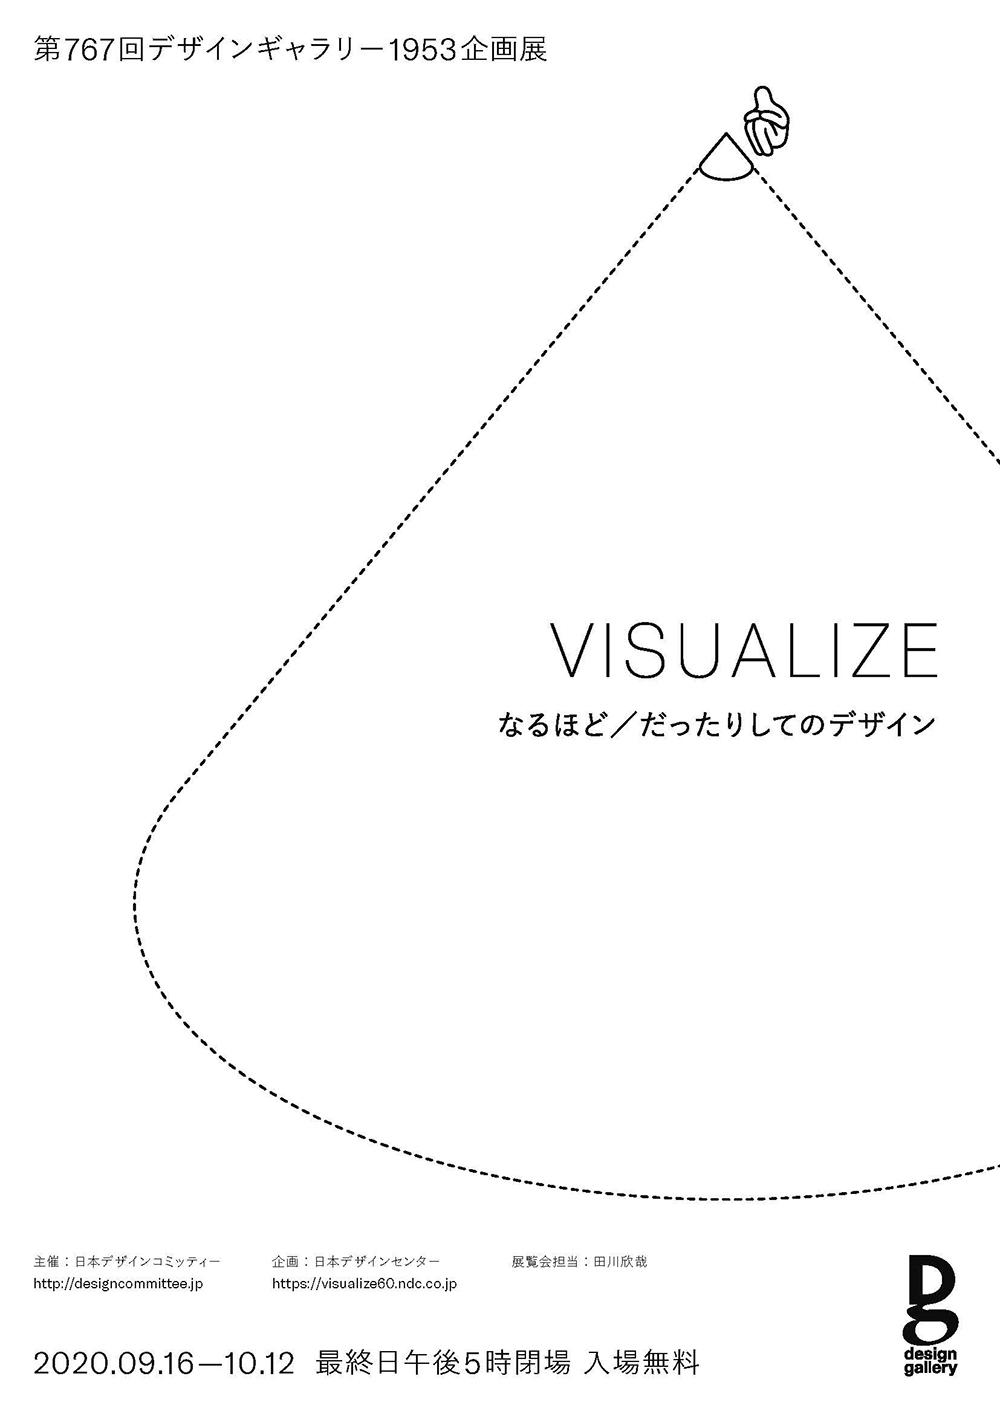 cm_ev2009_visualize60_2s.jpg